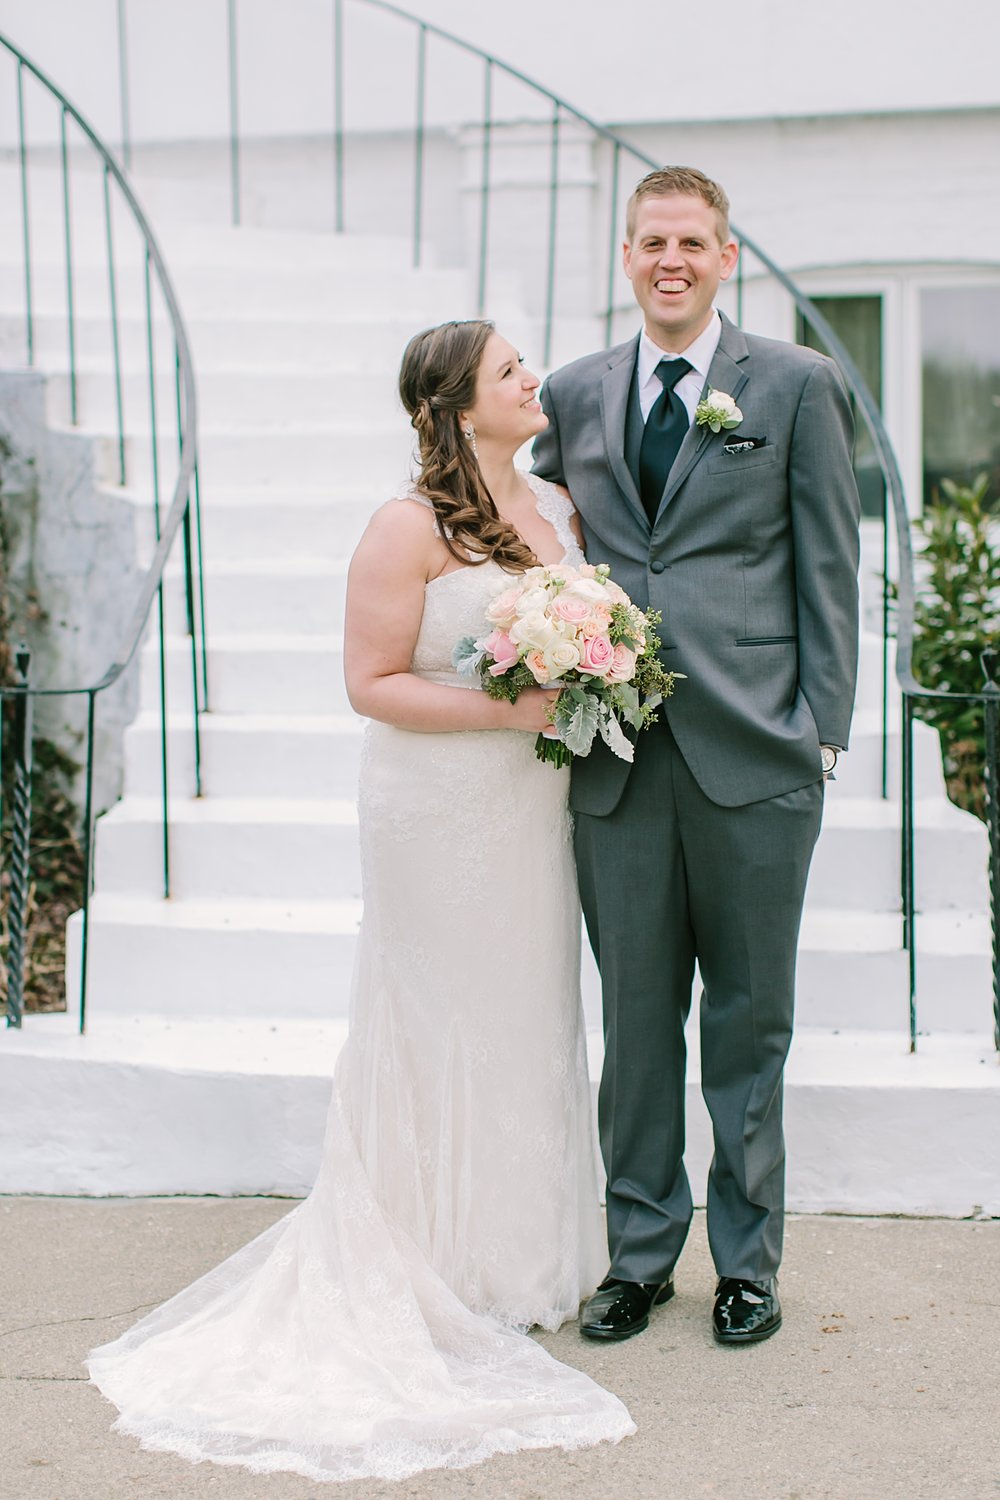 casie&erik_crabtreekittlehouse_wedding_0015.jpg